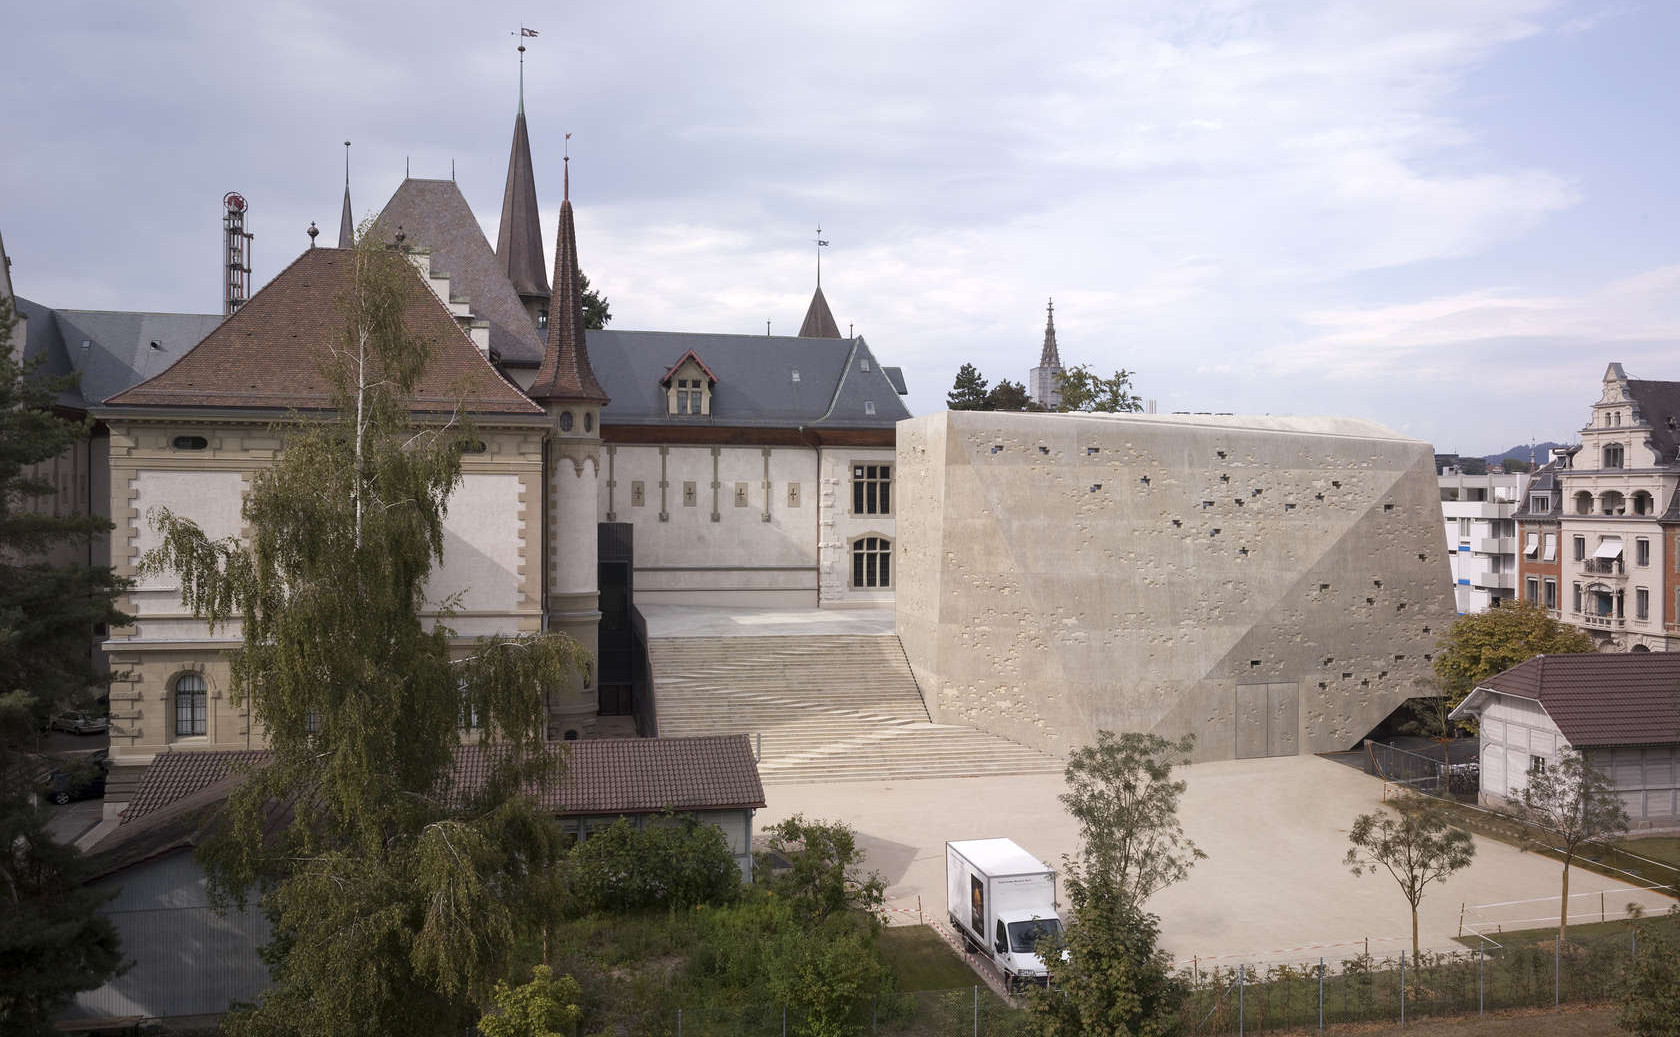 Extension to the Historisches Museum | MLZD